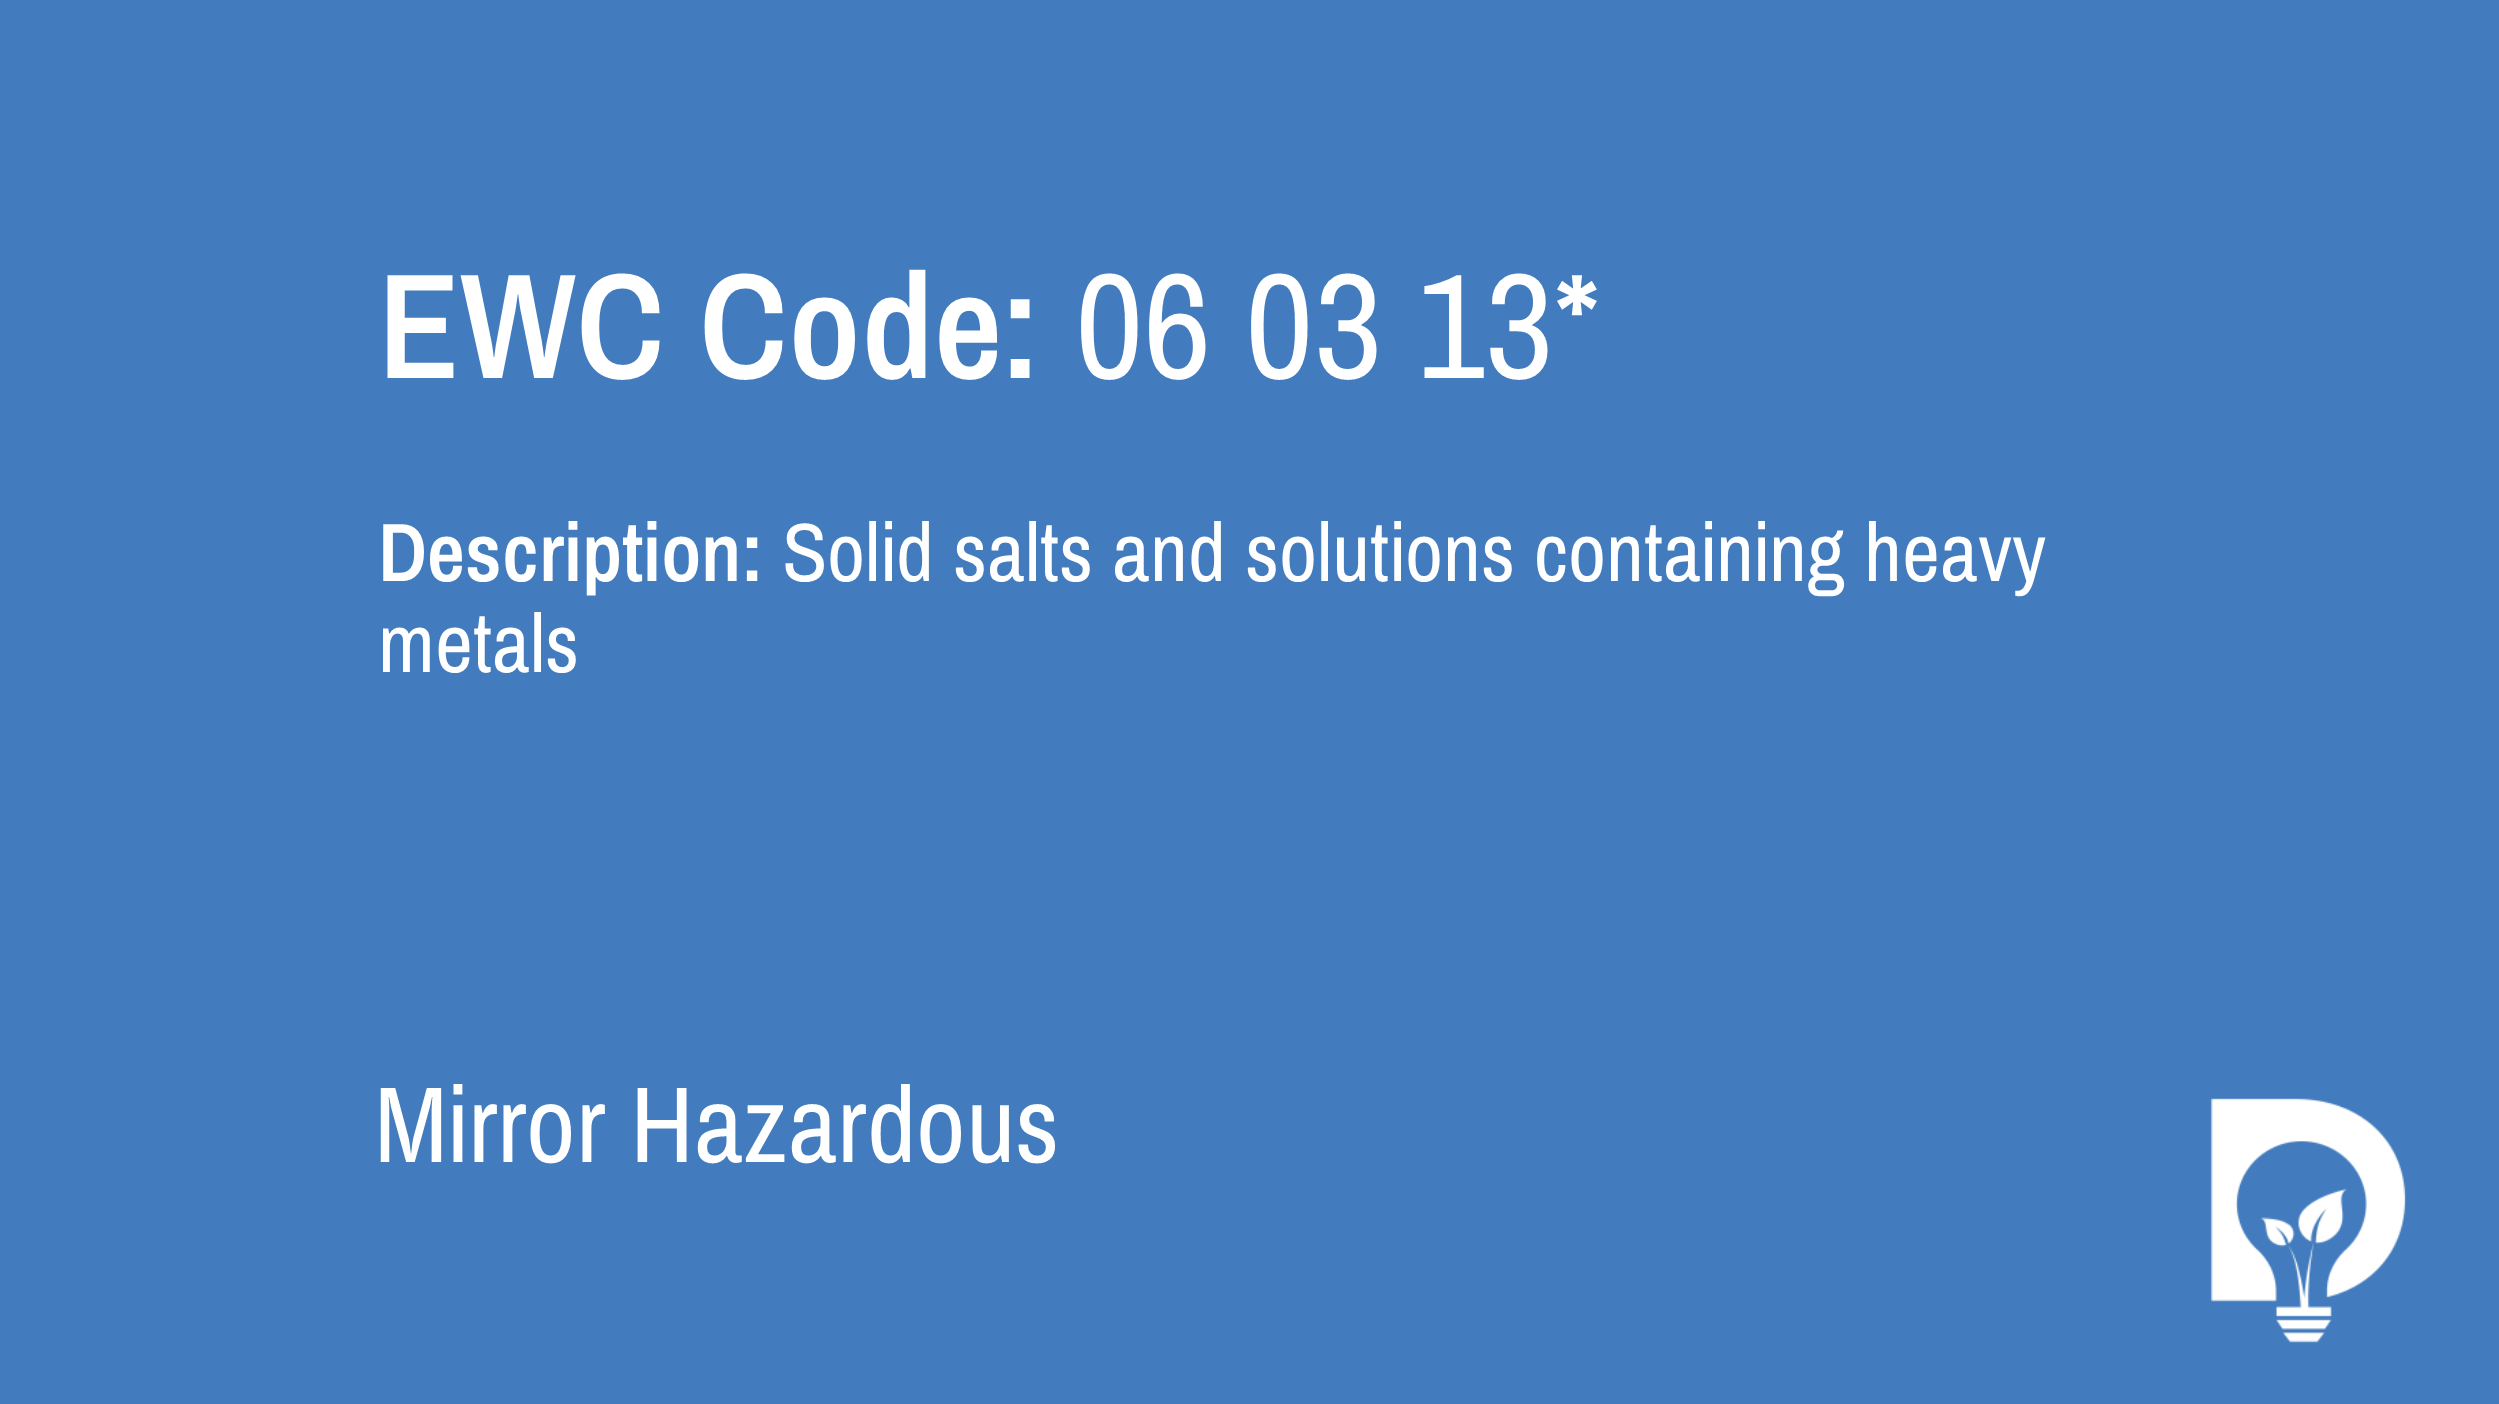 EWC Code: 06 03 13* - solid salts and solutions containing heavy metals. Type: Mirror Hazardous. Image by Dsposal